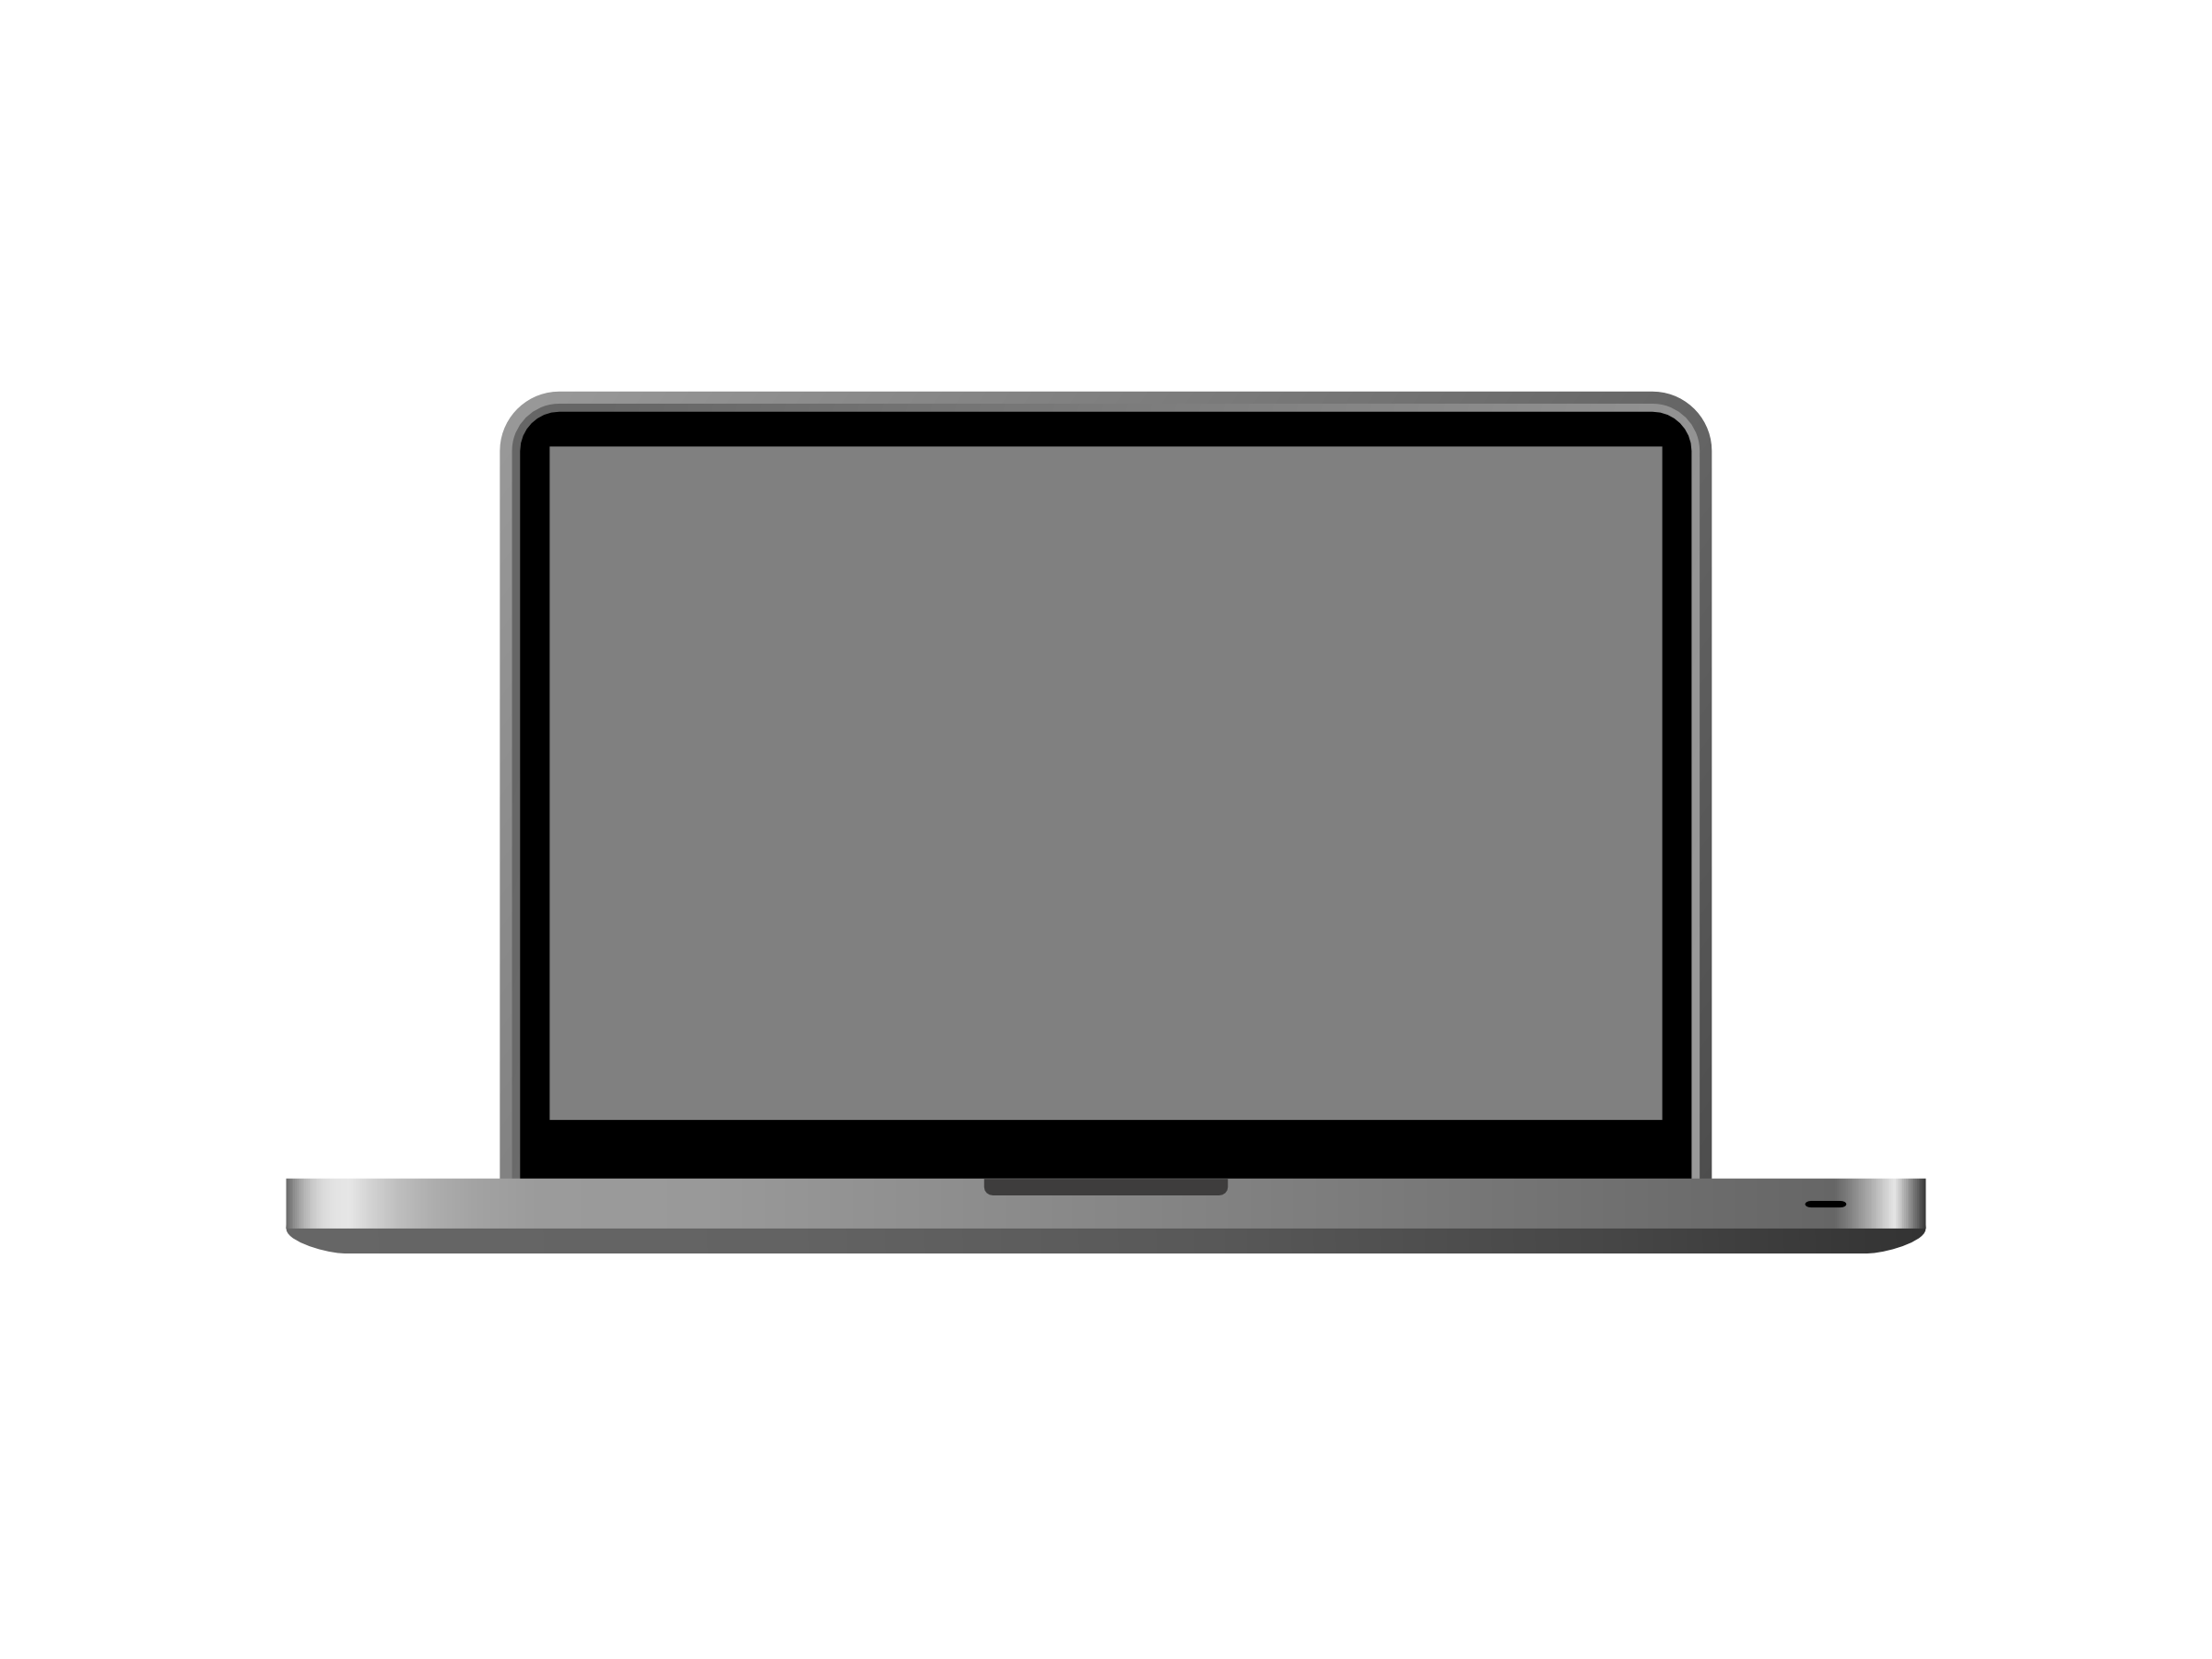 mac free clipart images - photo #28